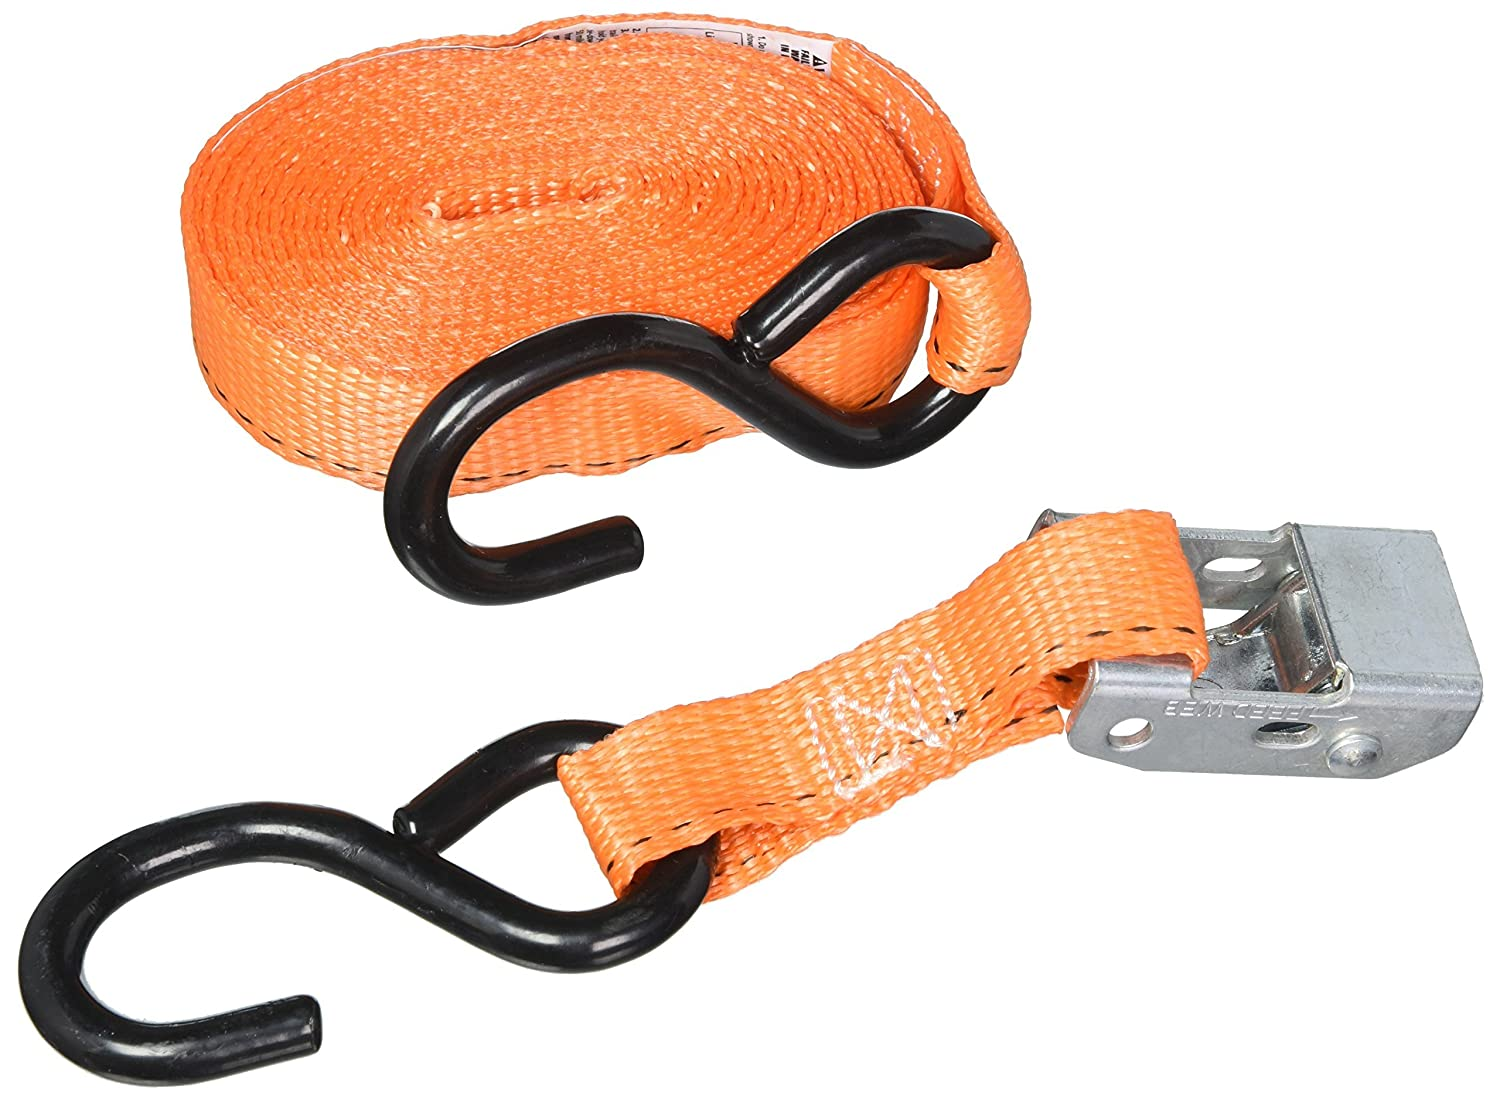 Keeper 89115-10 Tie Down Jensen Home Improvement